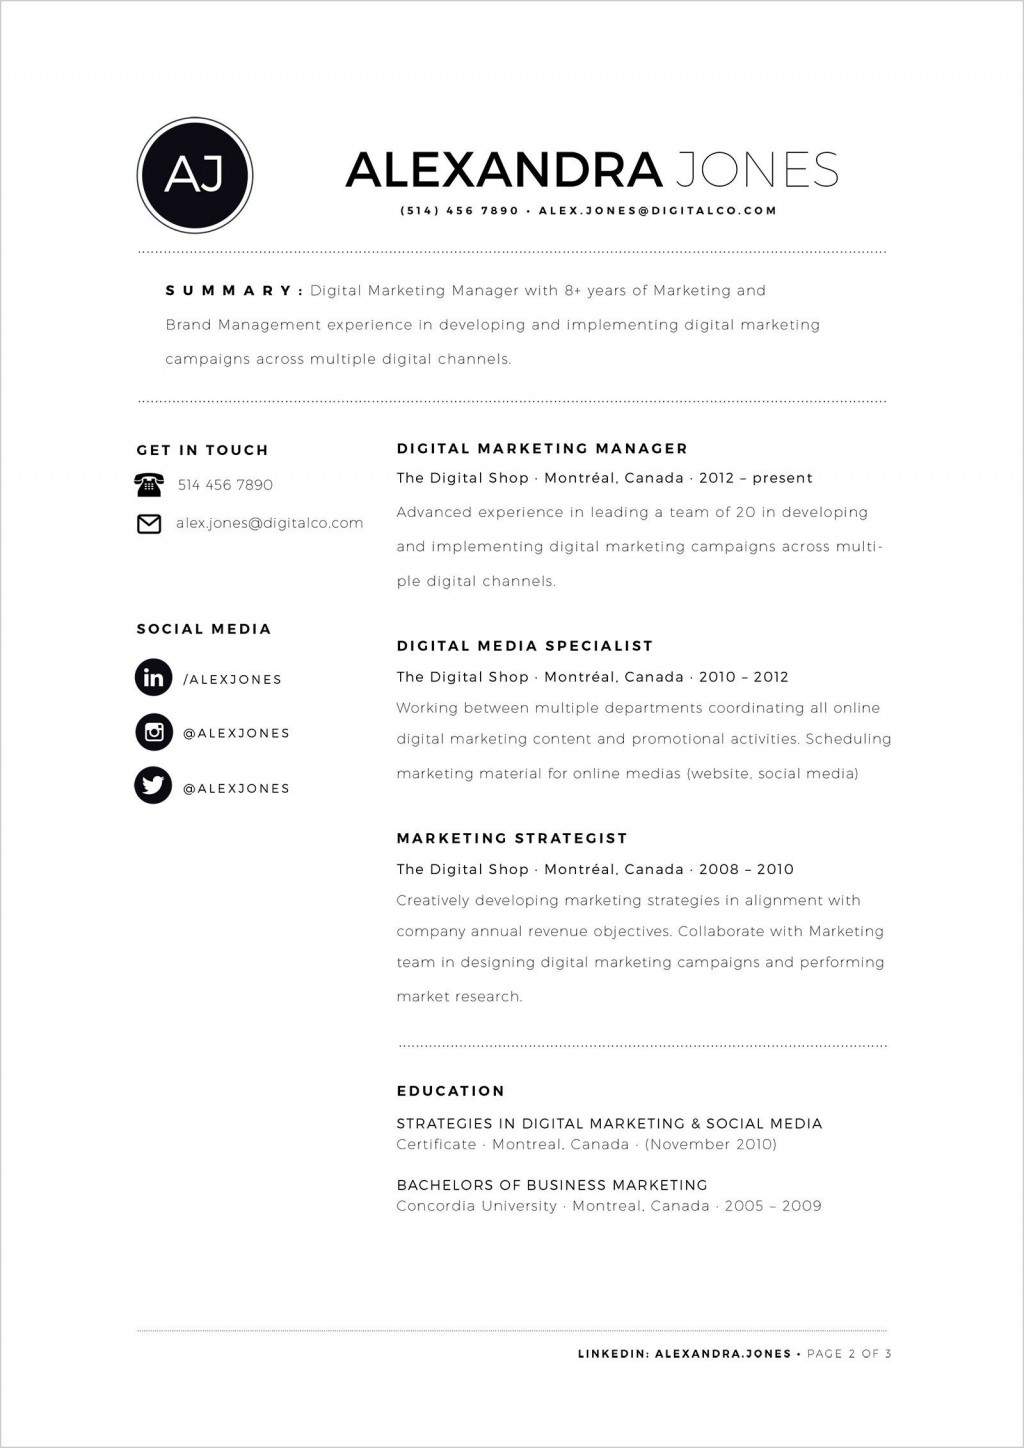 006 Fascinating Resume Template For Free Highest Quality  Best Word Freelance Writer MicrosoftLarge